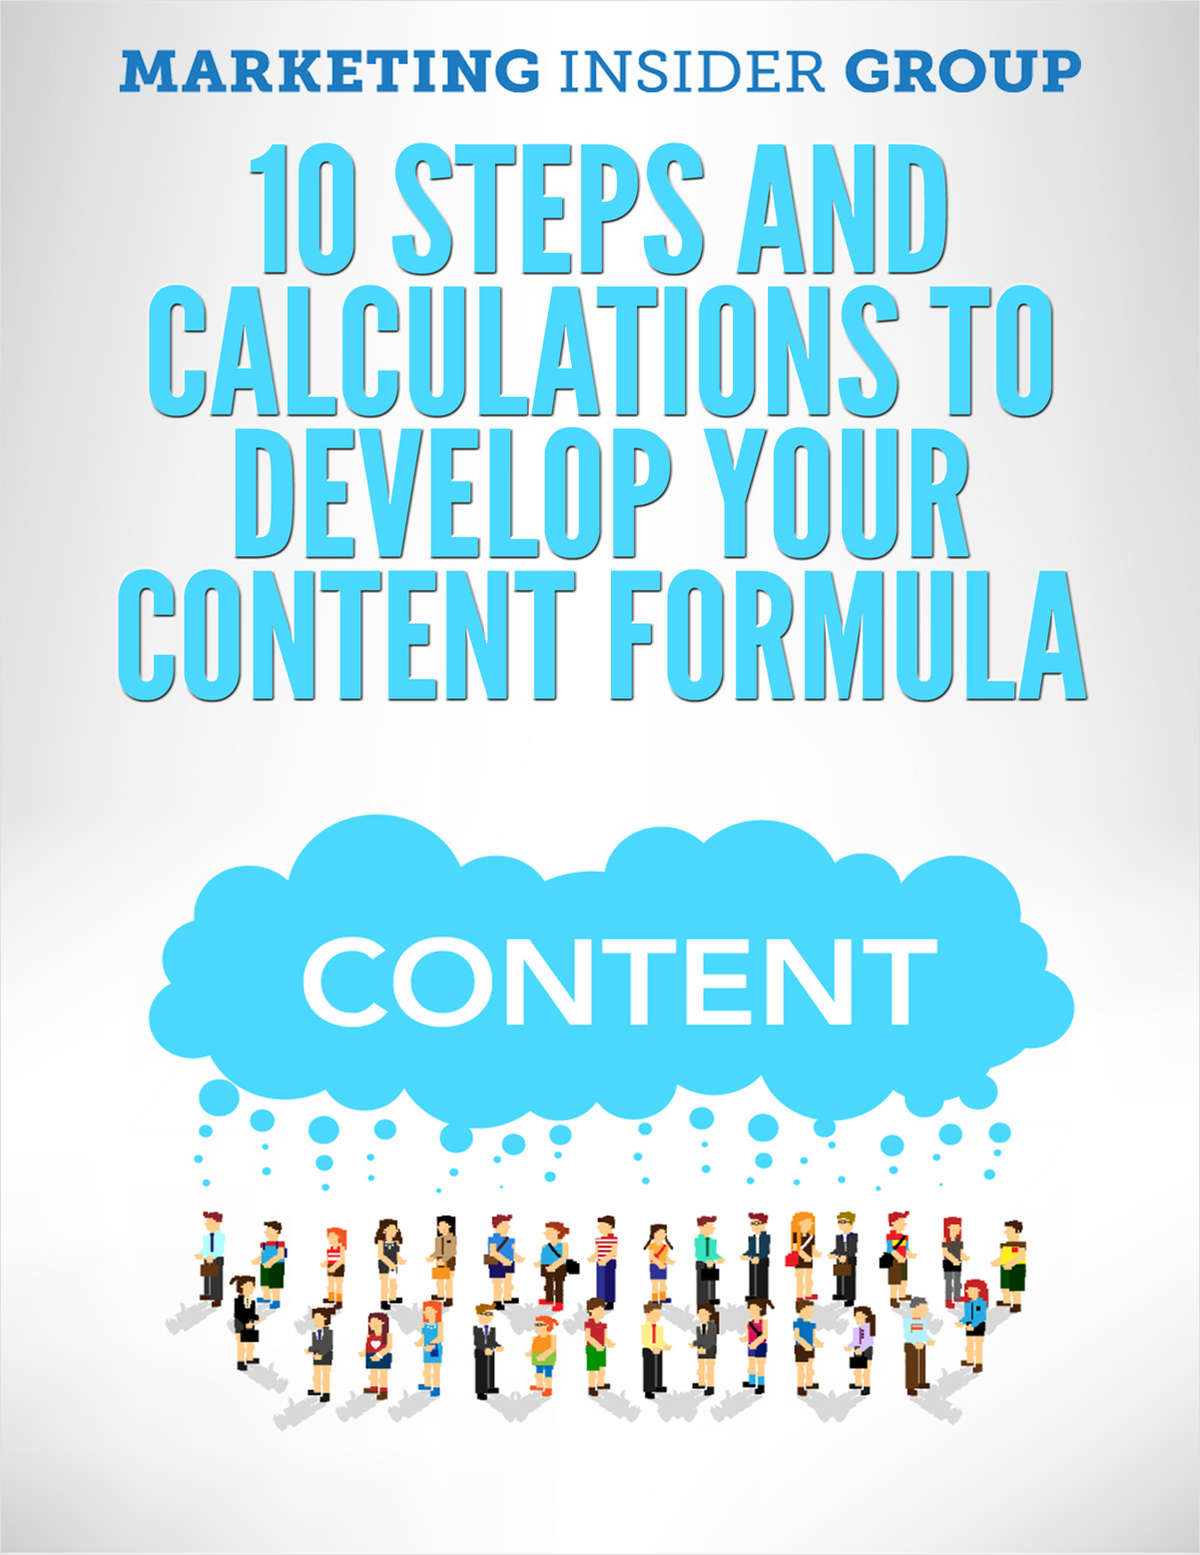 10 Steps and Calculations to Develop your Content Formula